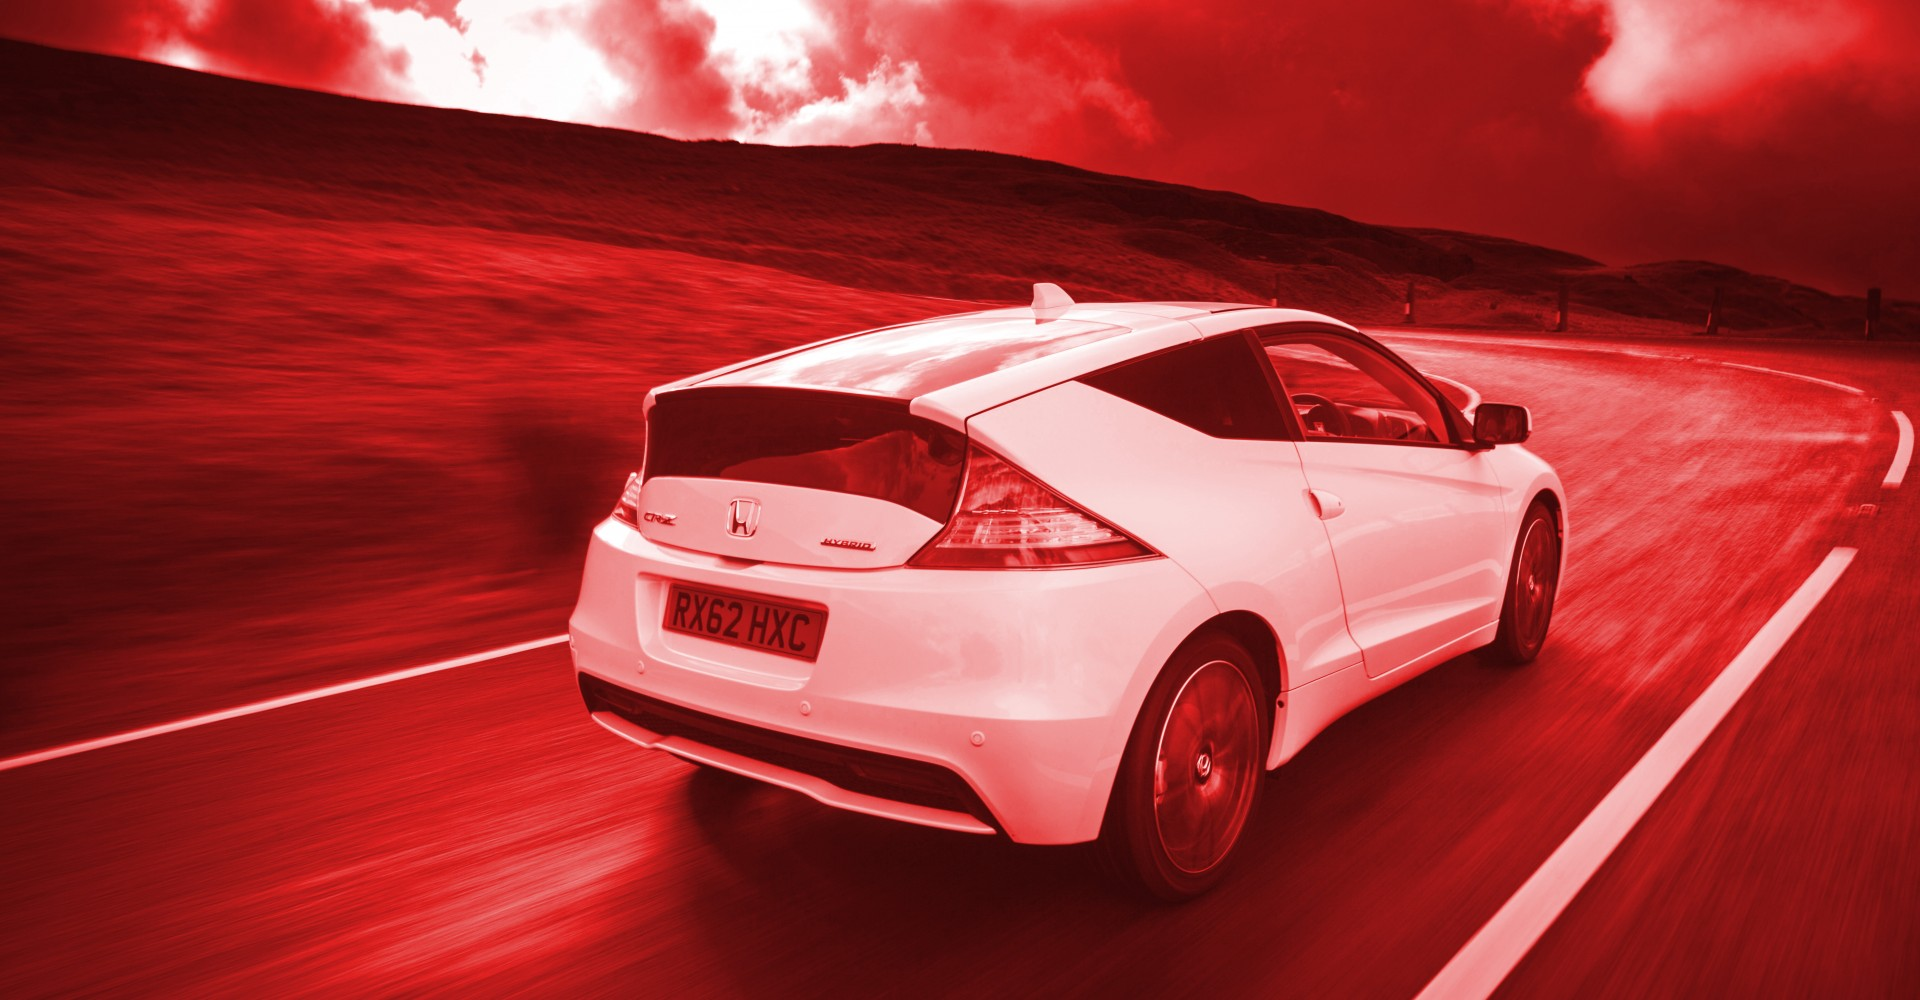 Rejoice! Honda CR-Z Is Coming Back With 280bhp Type-R Engine